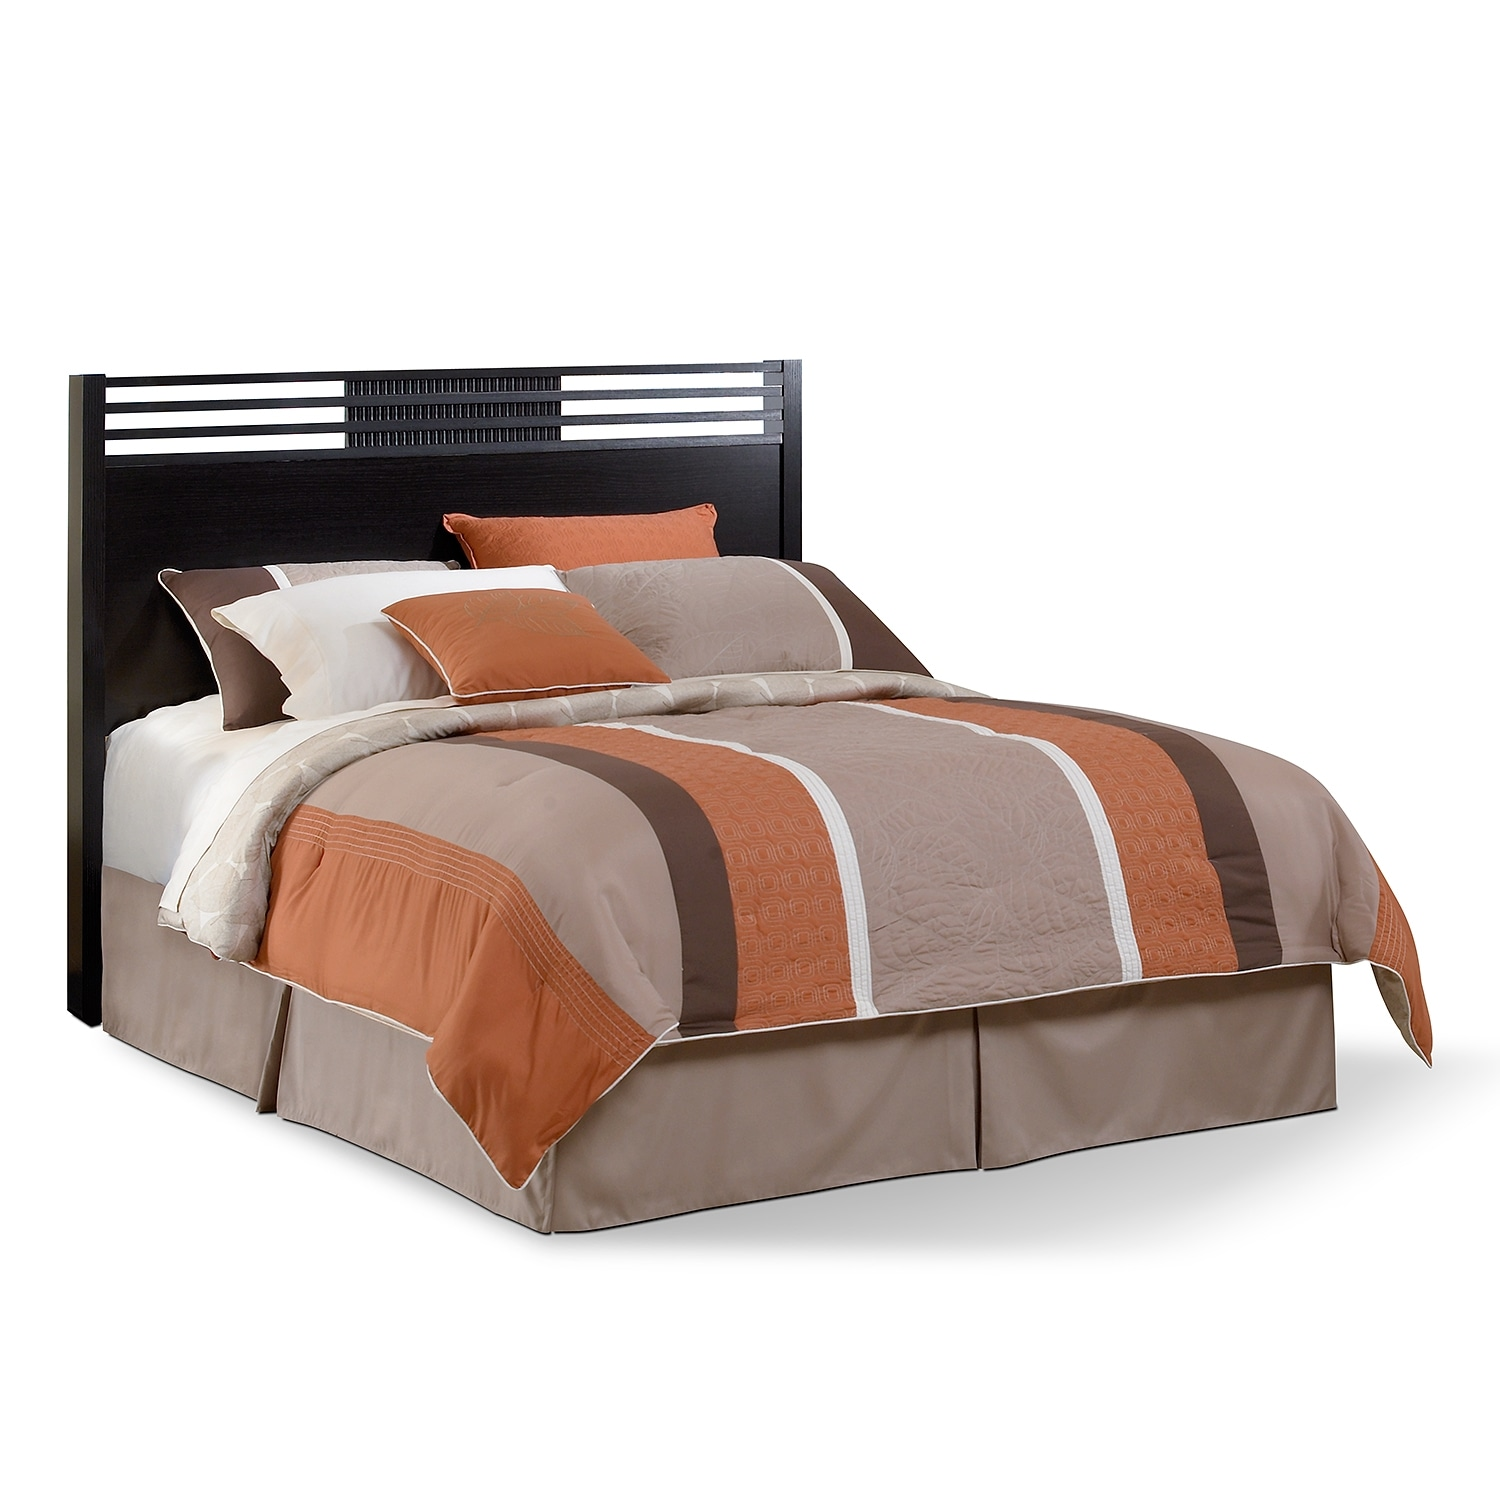 value city headboards beds value city furniture 13709